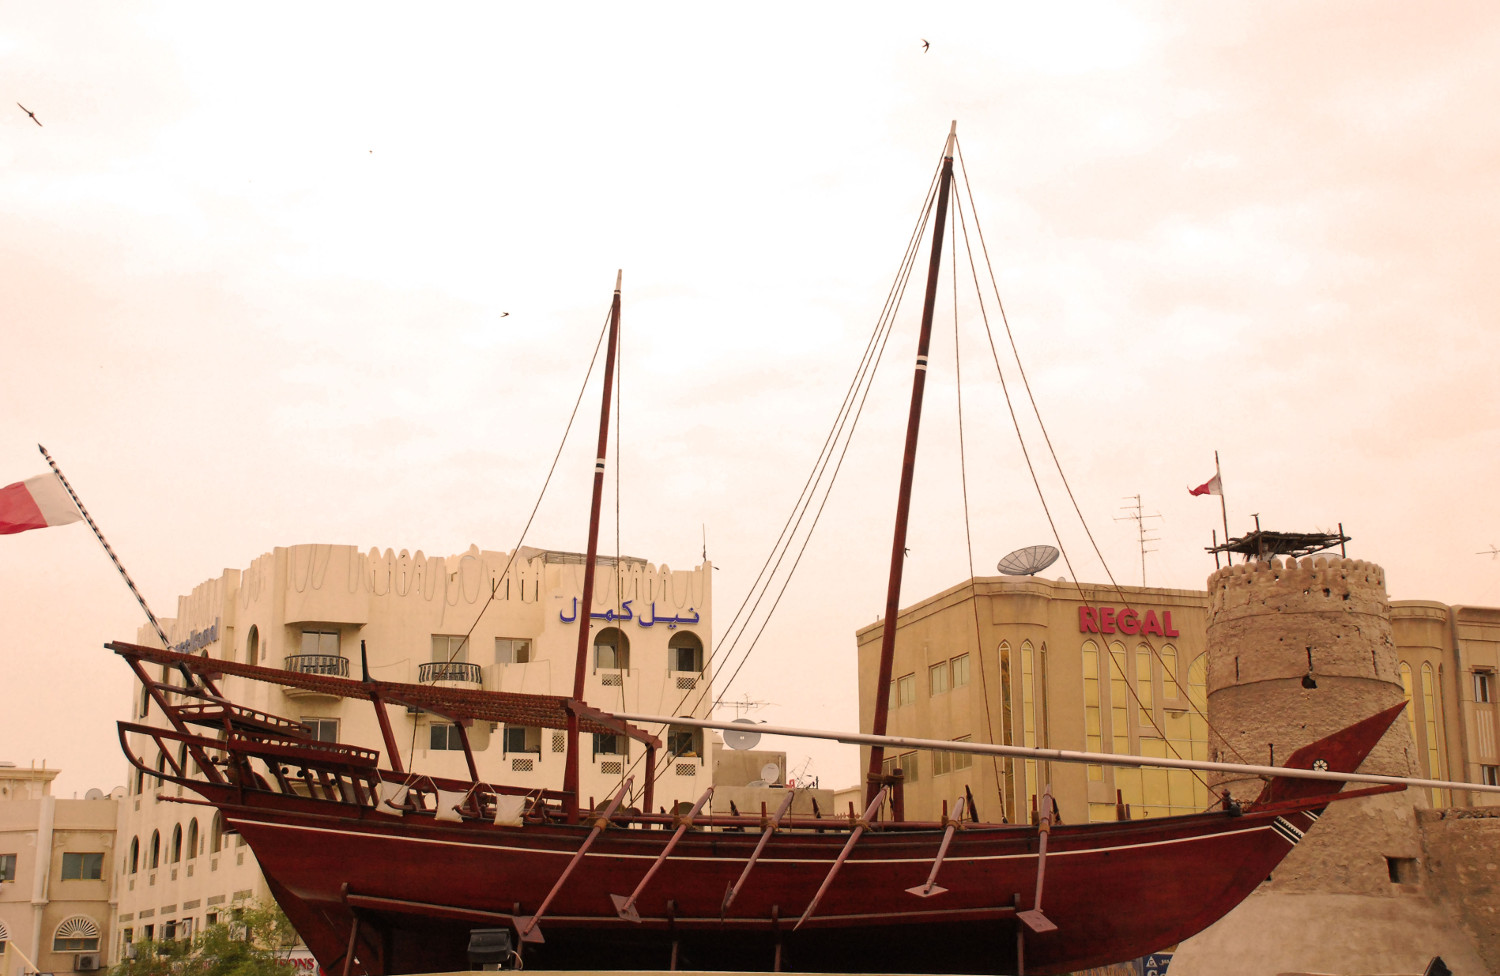 Taking a Dhow Cruise is an unforgettable experience in Dubai. Here's your complete Dubai travel guide for first timers. Includes the Dubai tourist attractions, off the beaten path things to do in Dubai, where to eat in Dubai, where to stay in Dubai, and useful Dubai travel tips. #dubai #dubaiguide #dubaitravelguide #dubaiattractions #dubaithingstodo #travel #uae #dubaitips